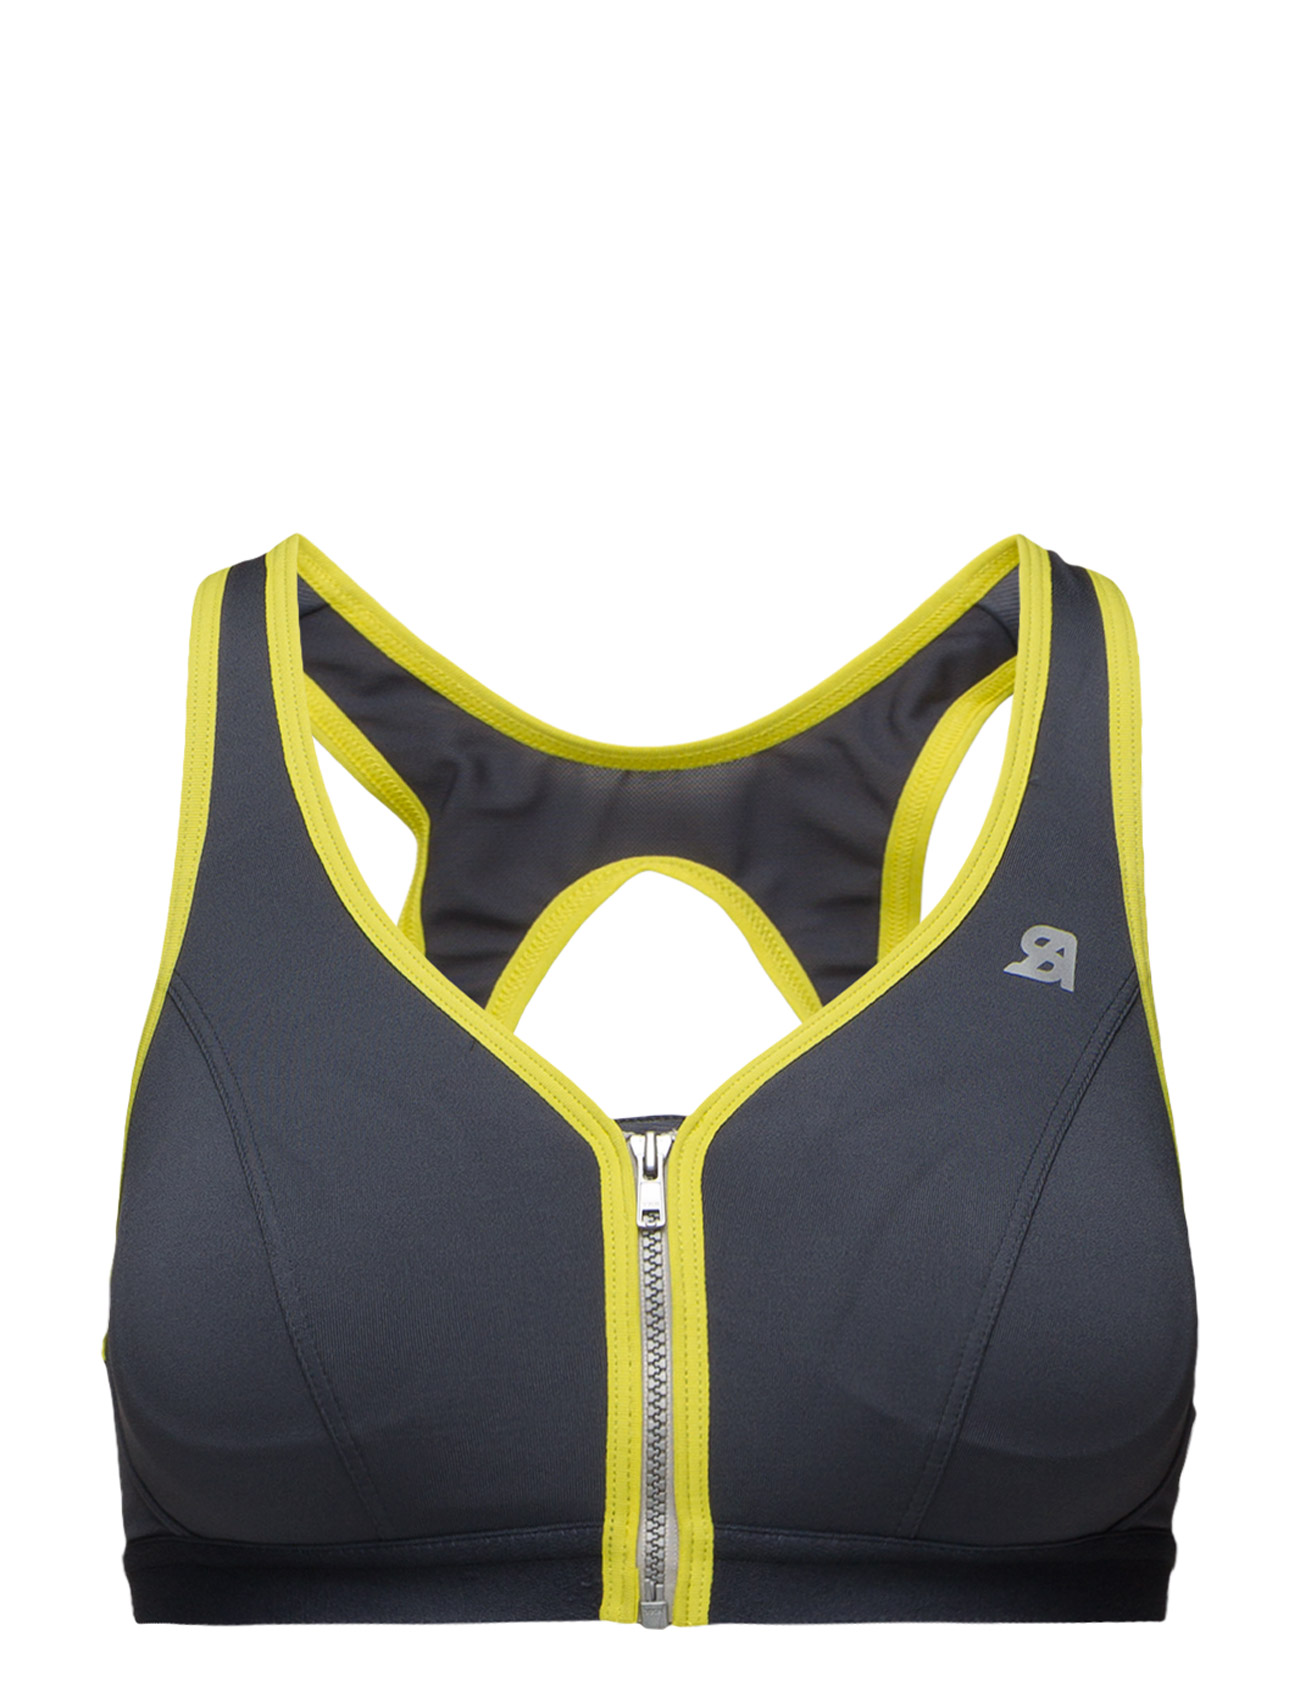 Active Zipped Plunge Bra Shock Absorber Sports undertøj til Damer i Gul